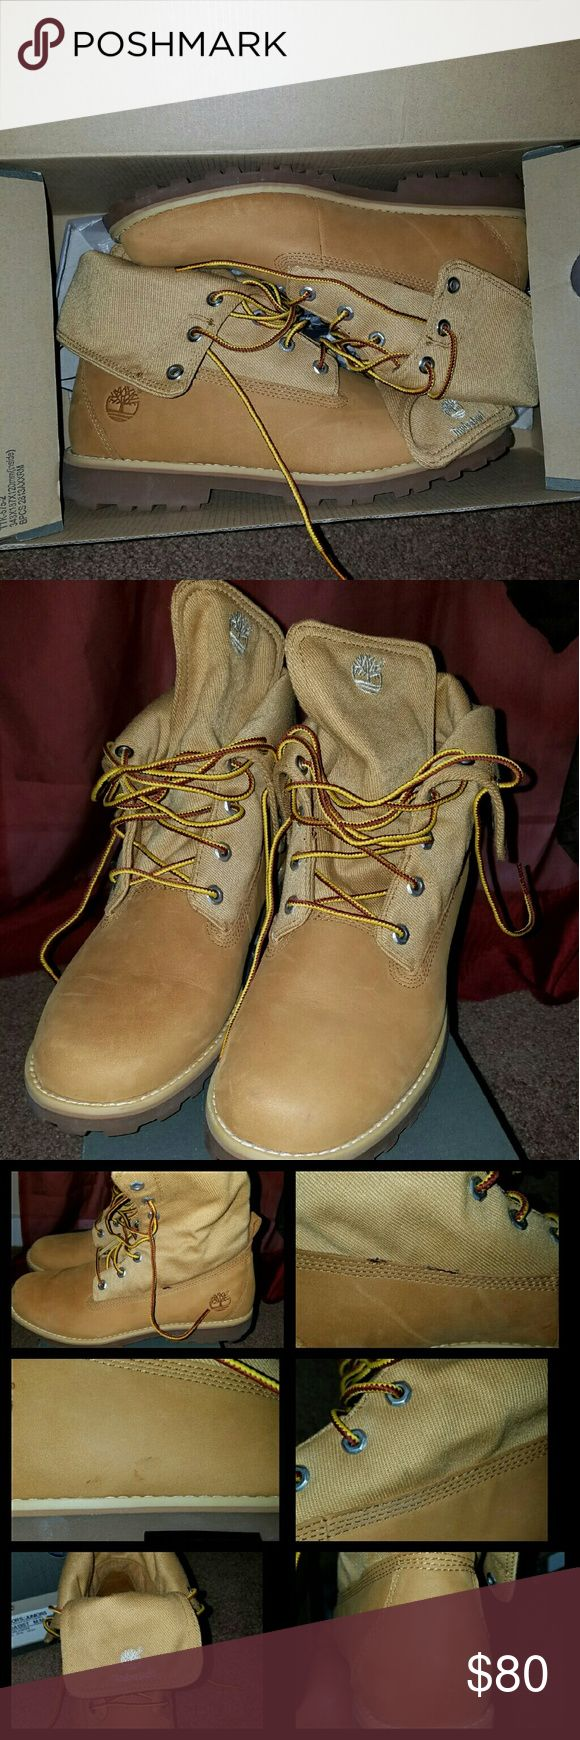 Wheat Timberland Boots Girl Wheat Timberland Boots, worn only a few times, there are a few flaws as you can see in the pics. Have a lot of wear left in them. Smoke/Pet free home :)! Timberland Shoes Boots